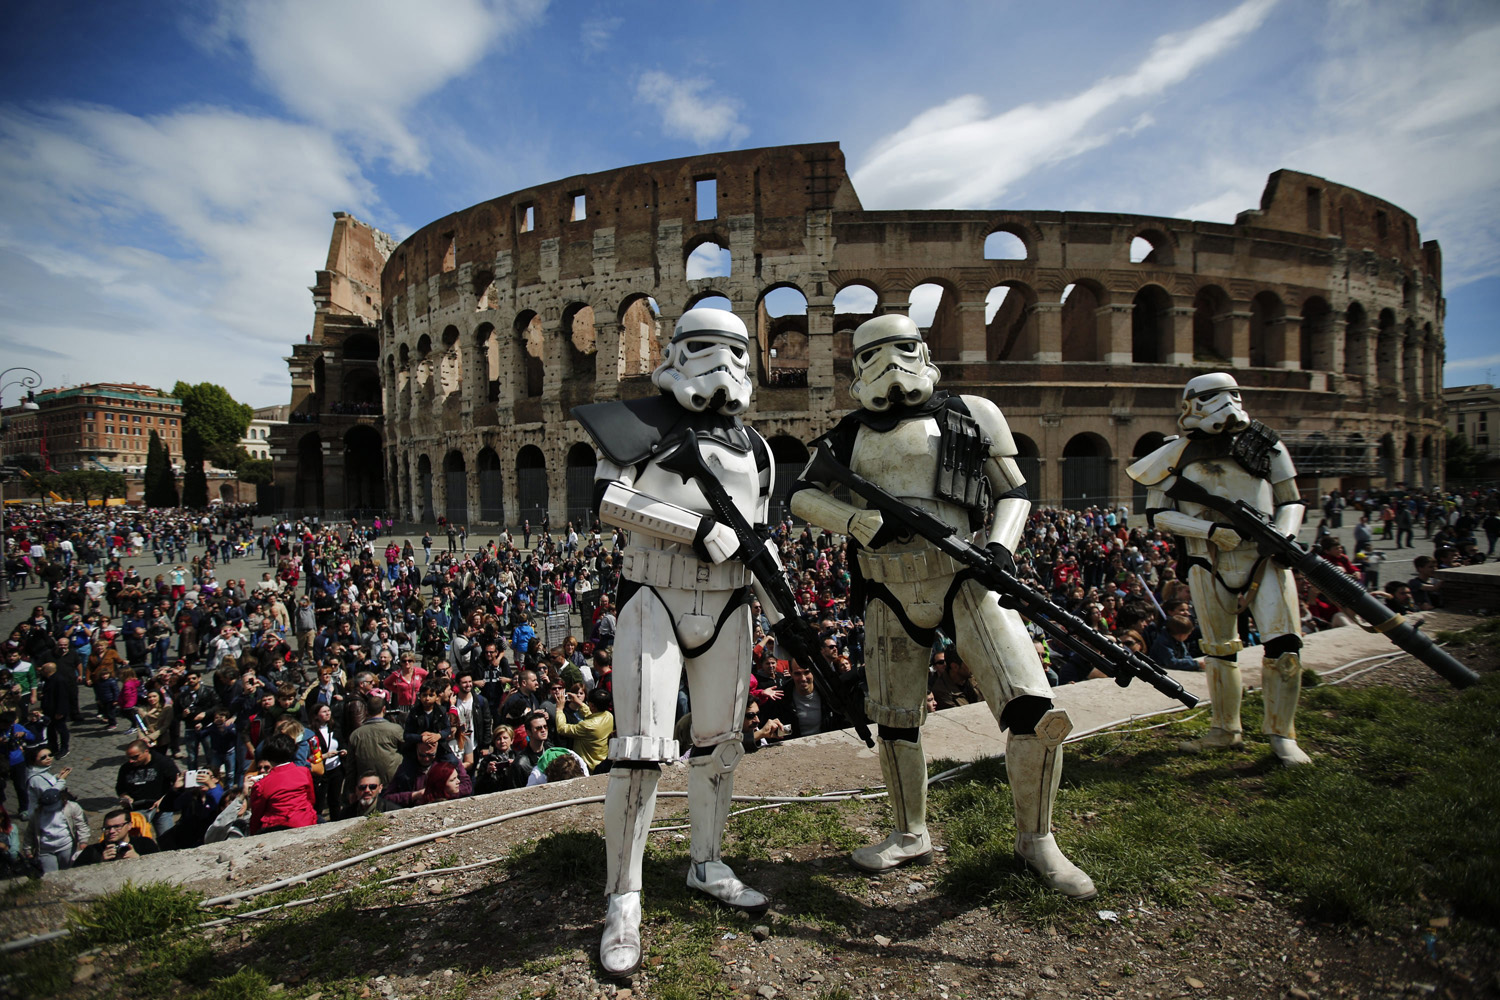 Members of the Star Wars fan club dressed as stormtroopers celebrate Star Wars Day in front of the Colosseum in central Rome on May 4, 2014.